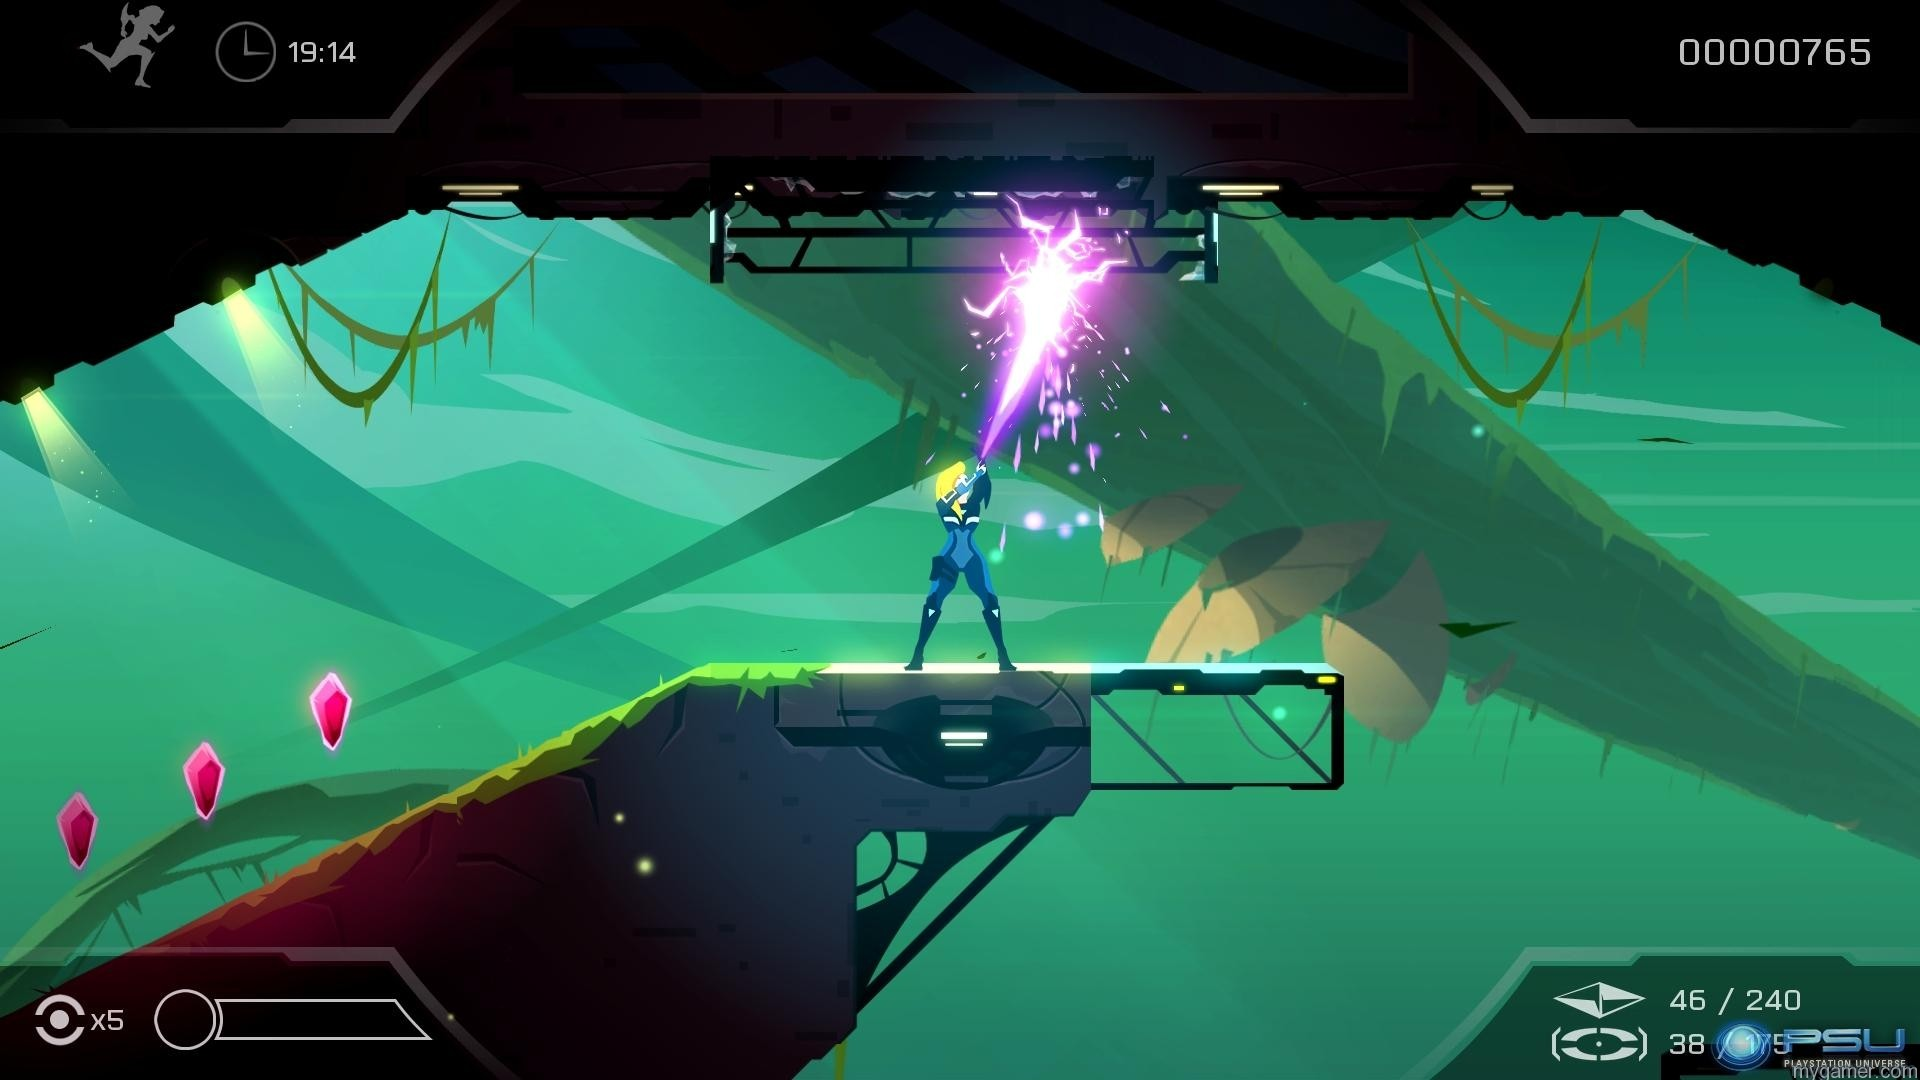 Velocity velocity 2x pc review Velocity 2X PC Review Velocity